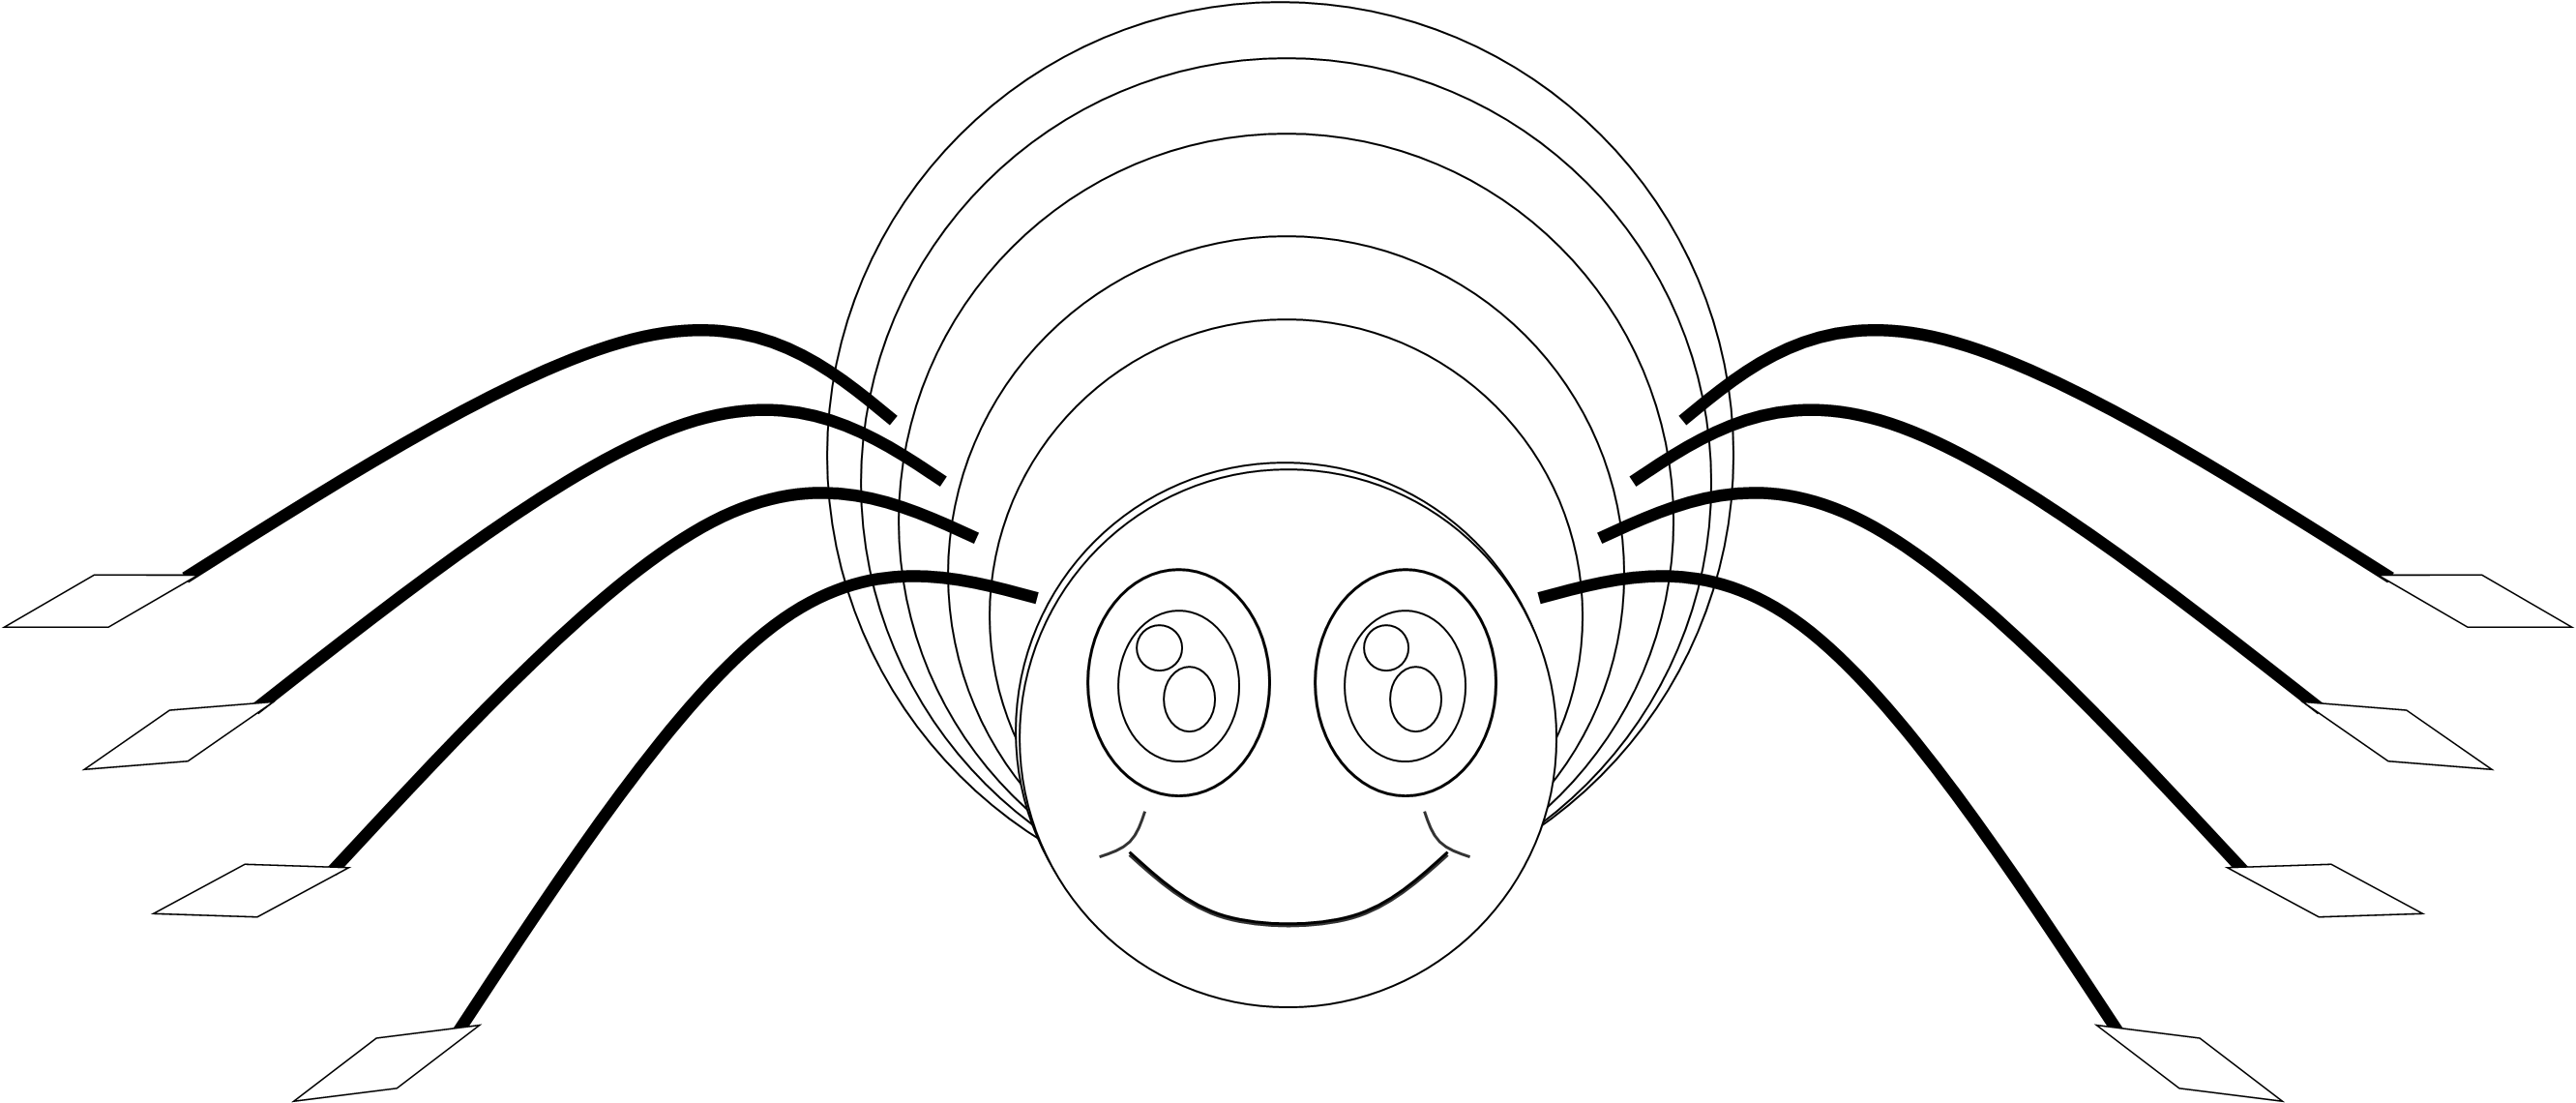 Spider clipart spider eye. Bw free images at